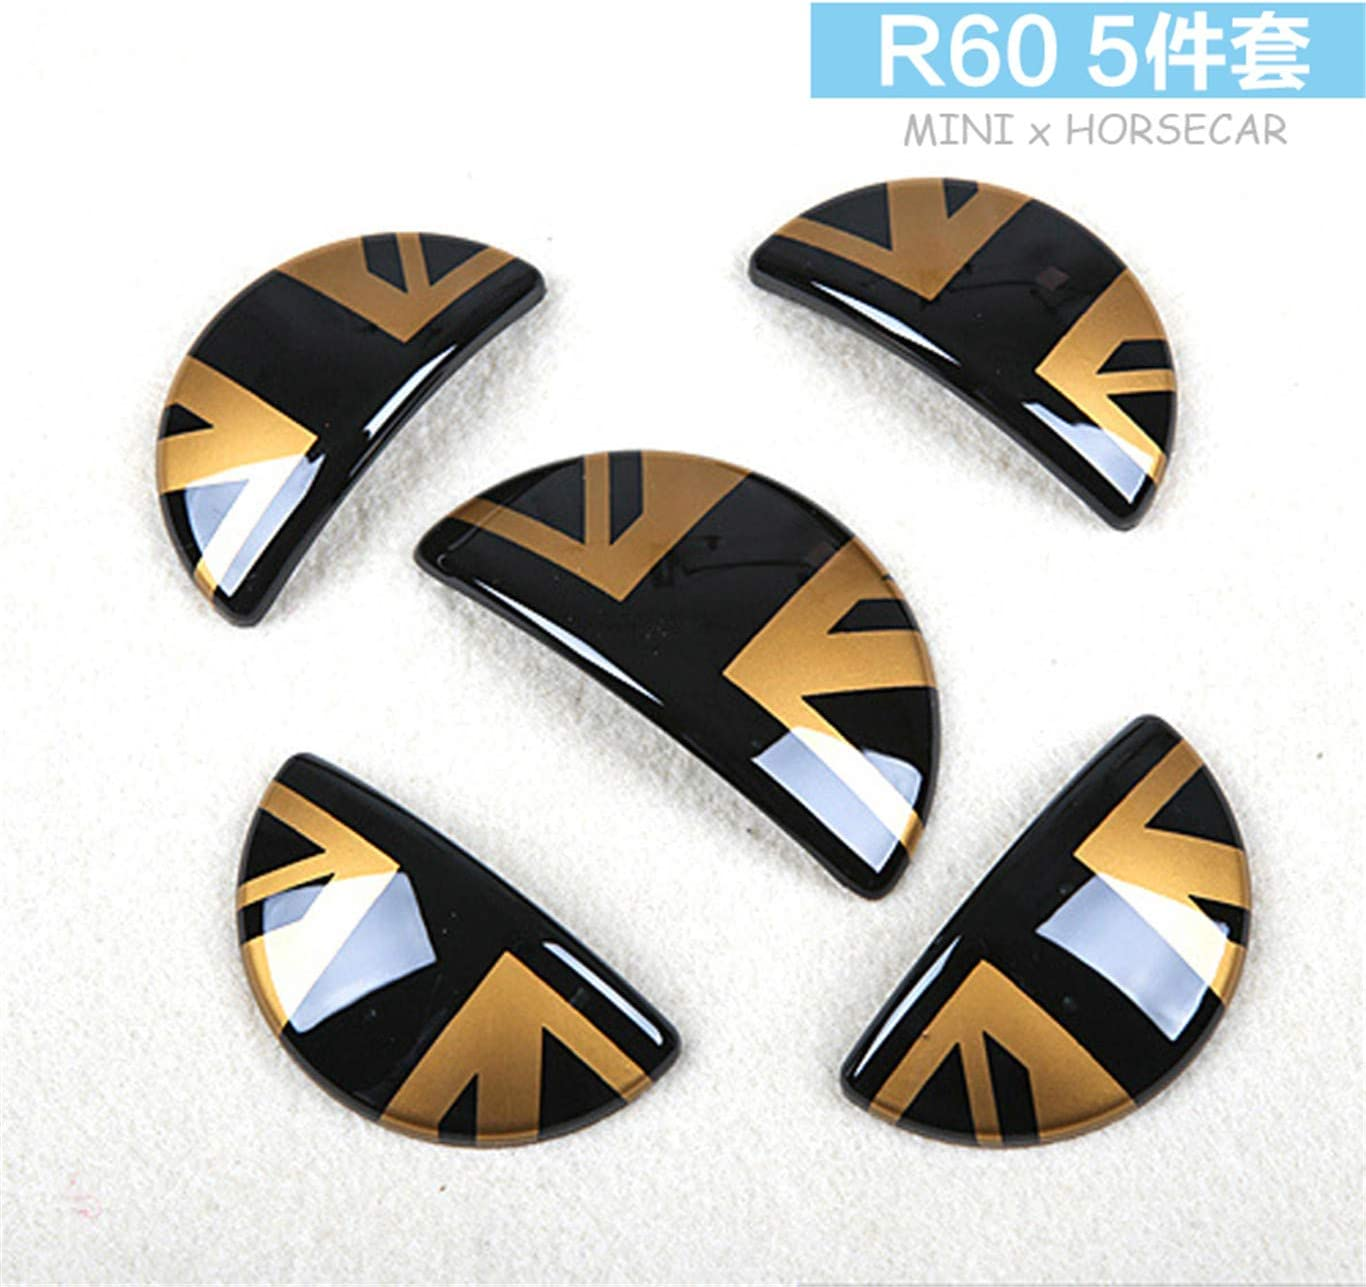 Door Handle with Key Hole 4 Pieces Black//Gold Union Jack UK Flag ABS Sticker Cover Trim Cap for Mini Cooper ONE S JCW R Series R60 Countryman R61 Paceman 2010-2016